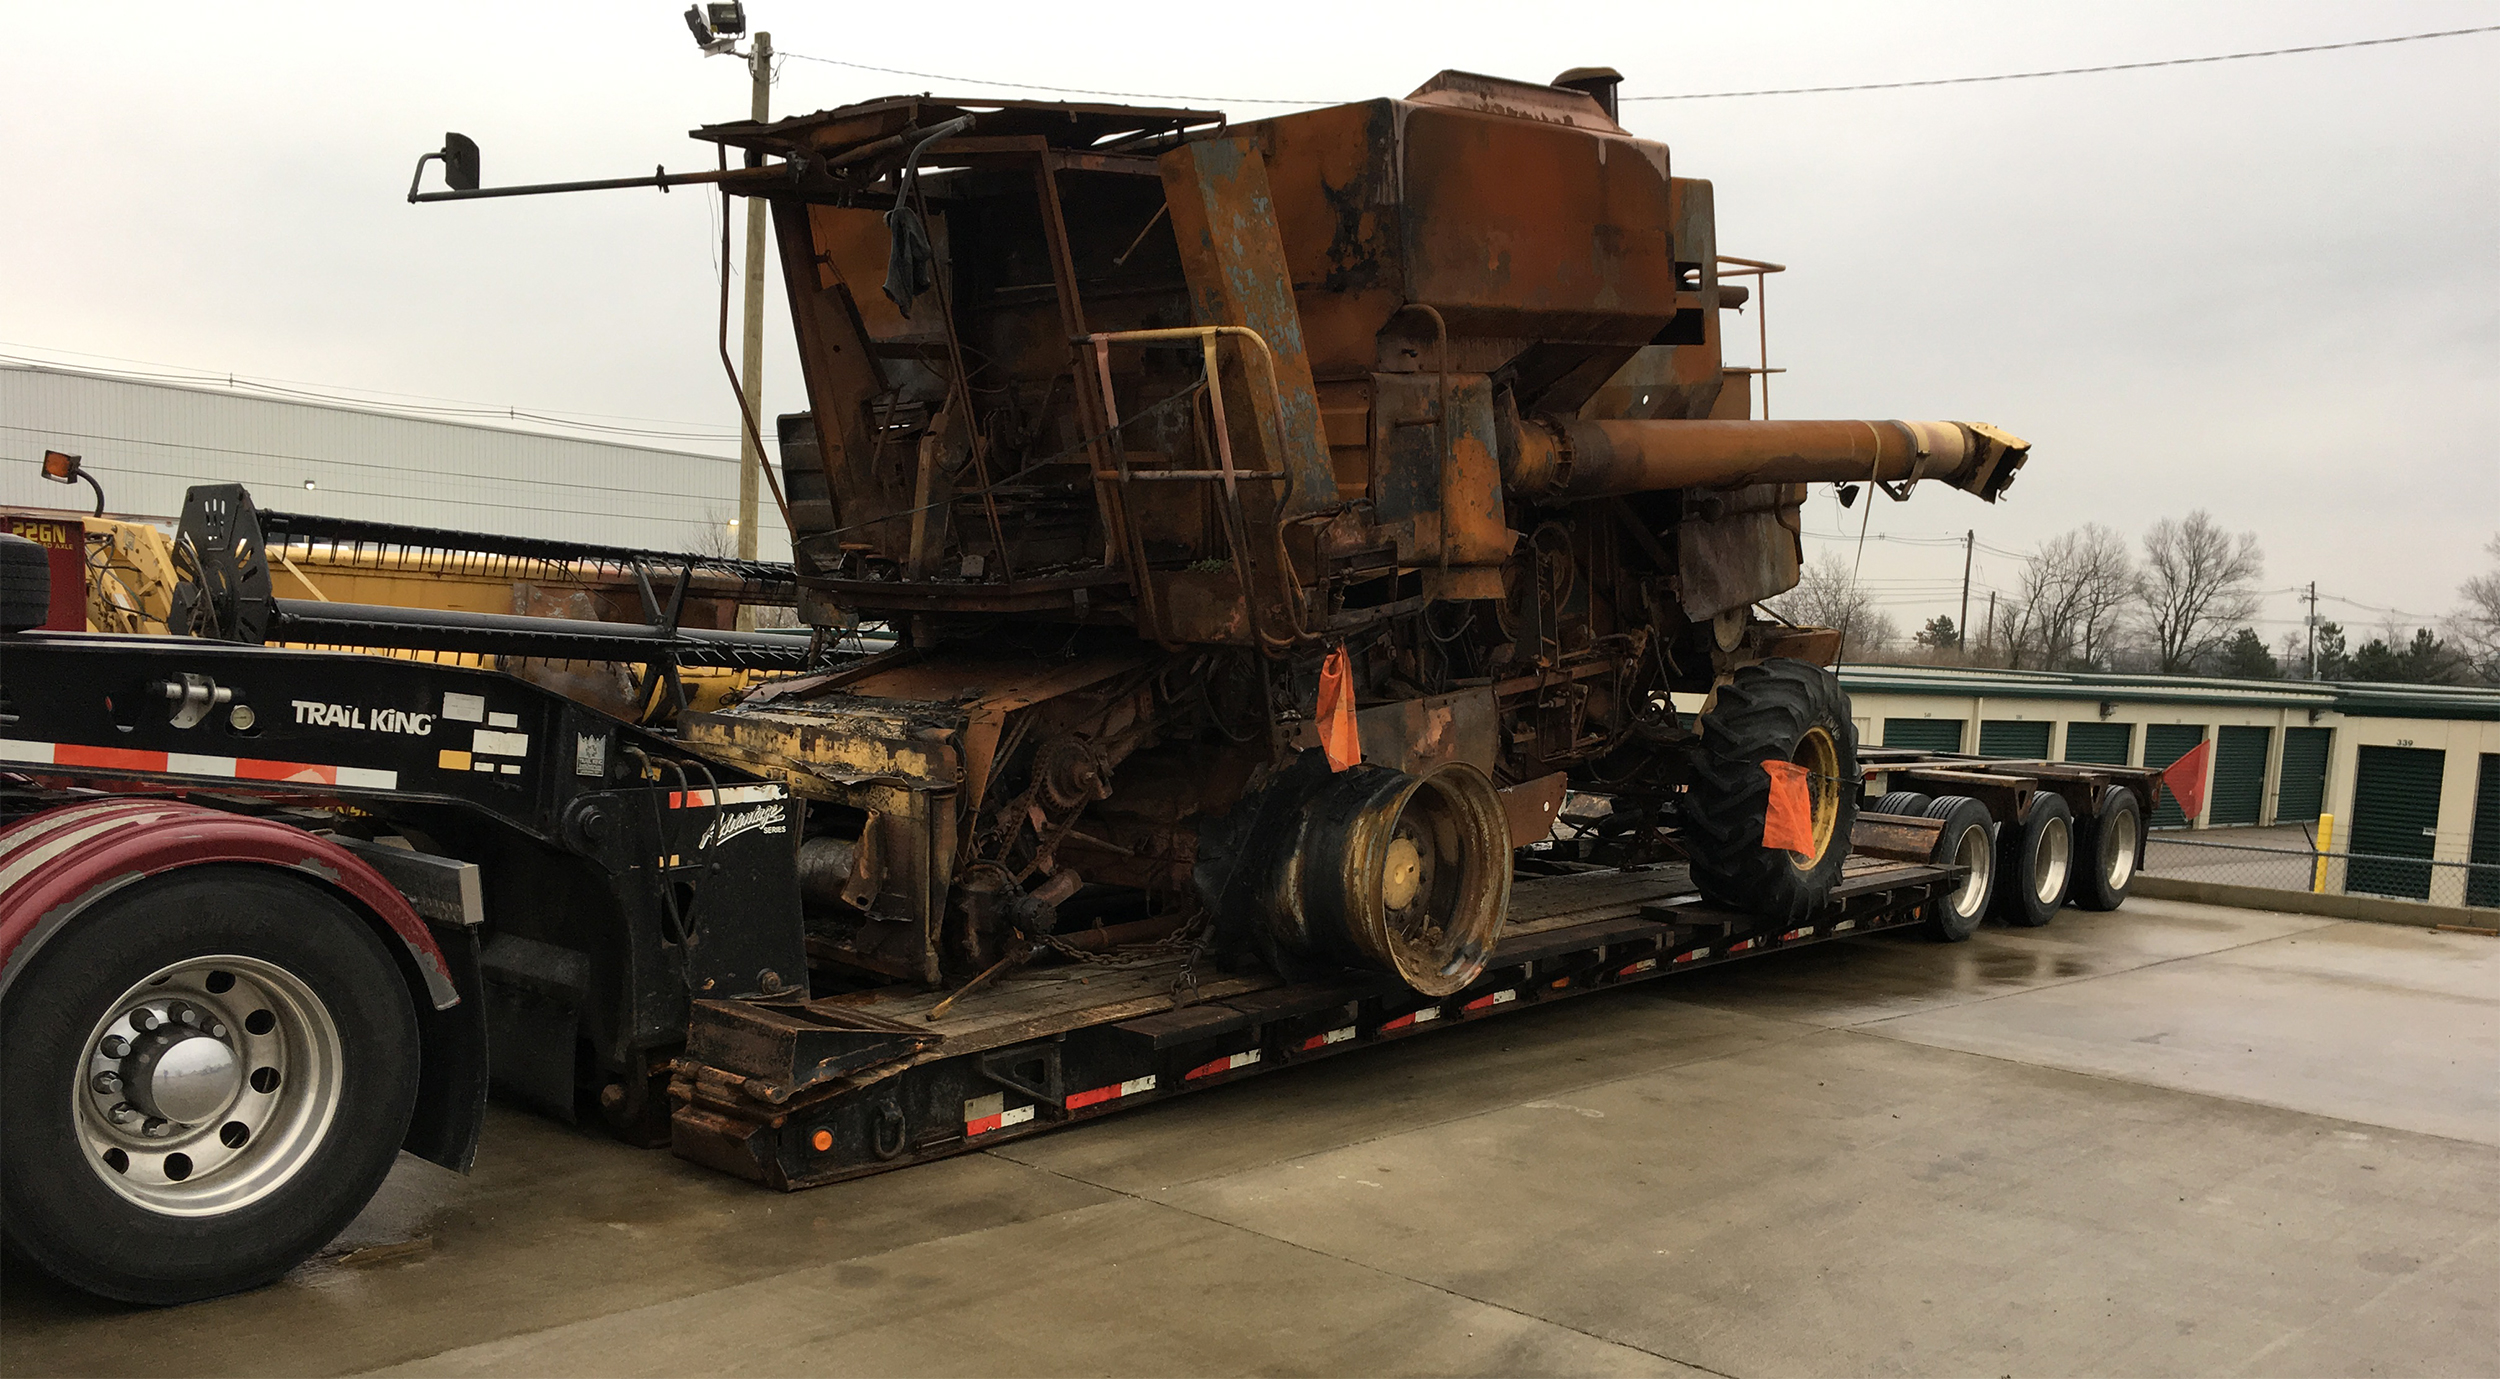 Transporting an Inoperable International Harvester Combine